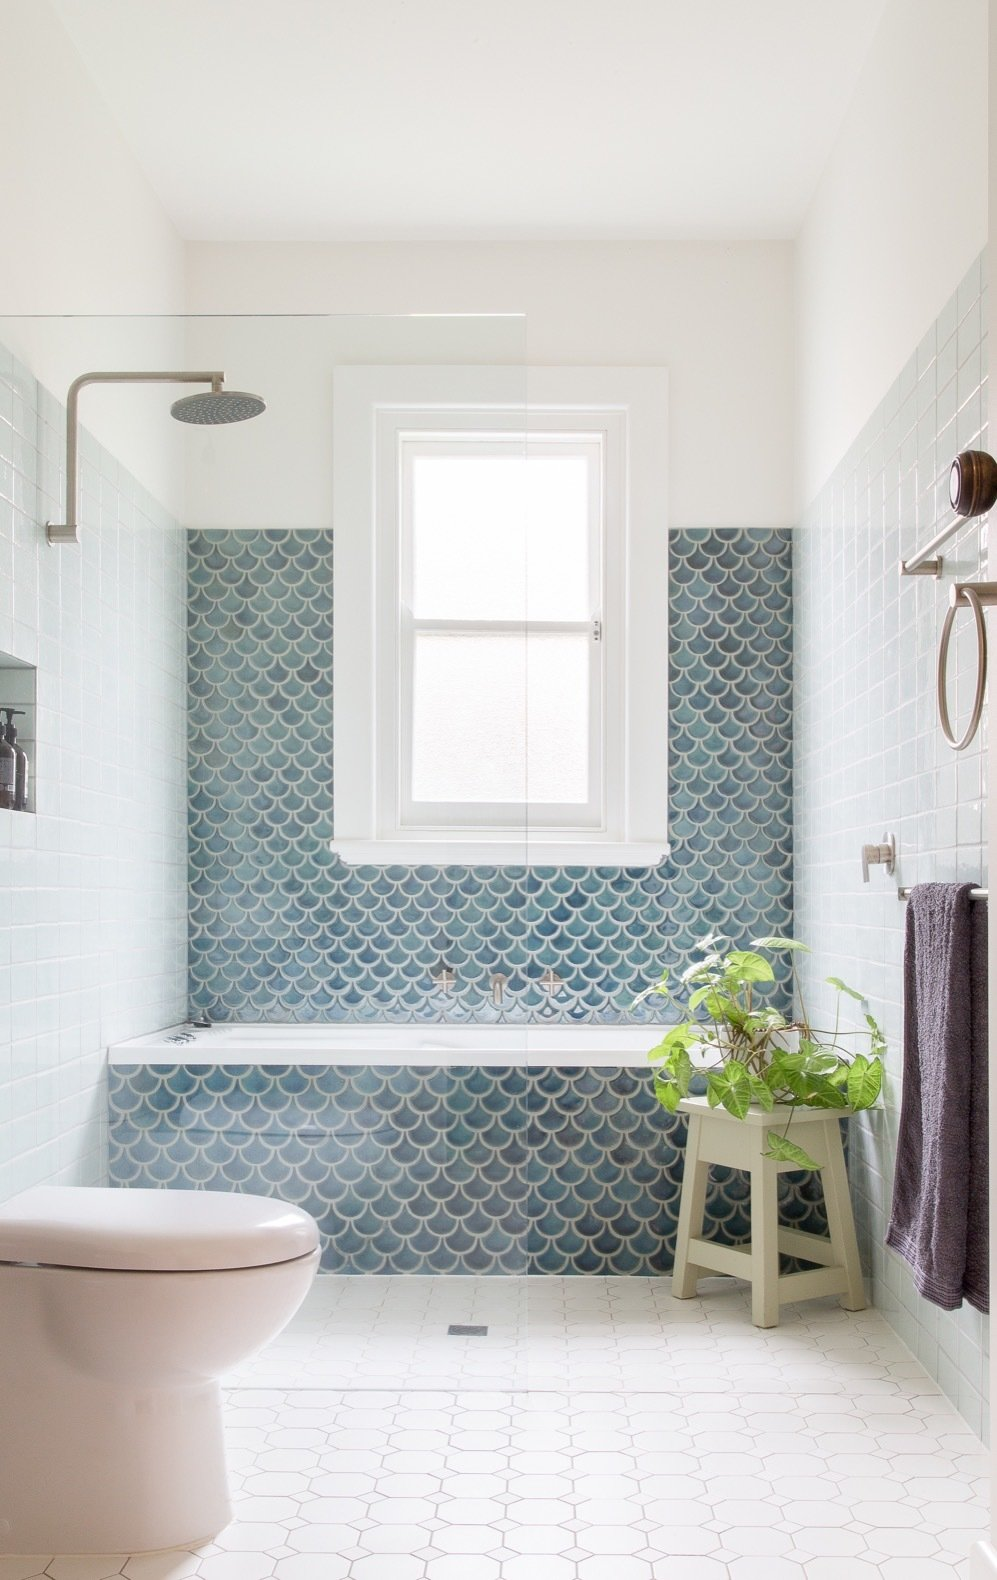 Bath Room, Two Piece Toilet, Porcelain Tile Floor, Stone Counter, Ceramic Tile Wall, Alcove Tub, Vessel Sink, and Enclosed Shower Handmade fish-scale tiles line the wall over the bath.  Best Photos from A Cramped Bungalow Is Reborn as an Eco-Minded Abode For Two Gardeners